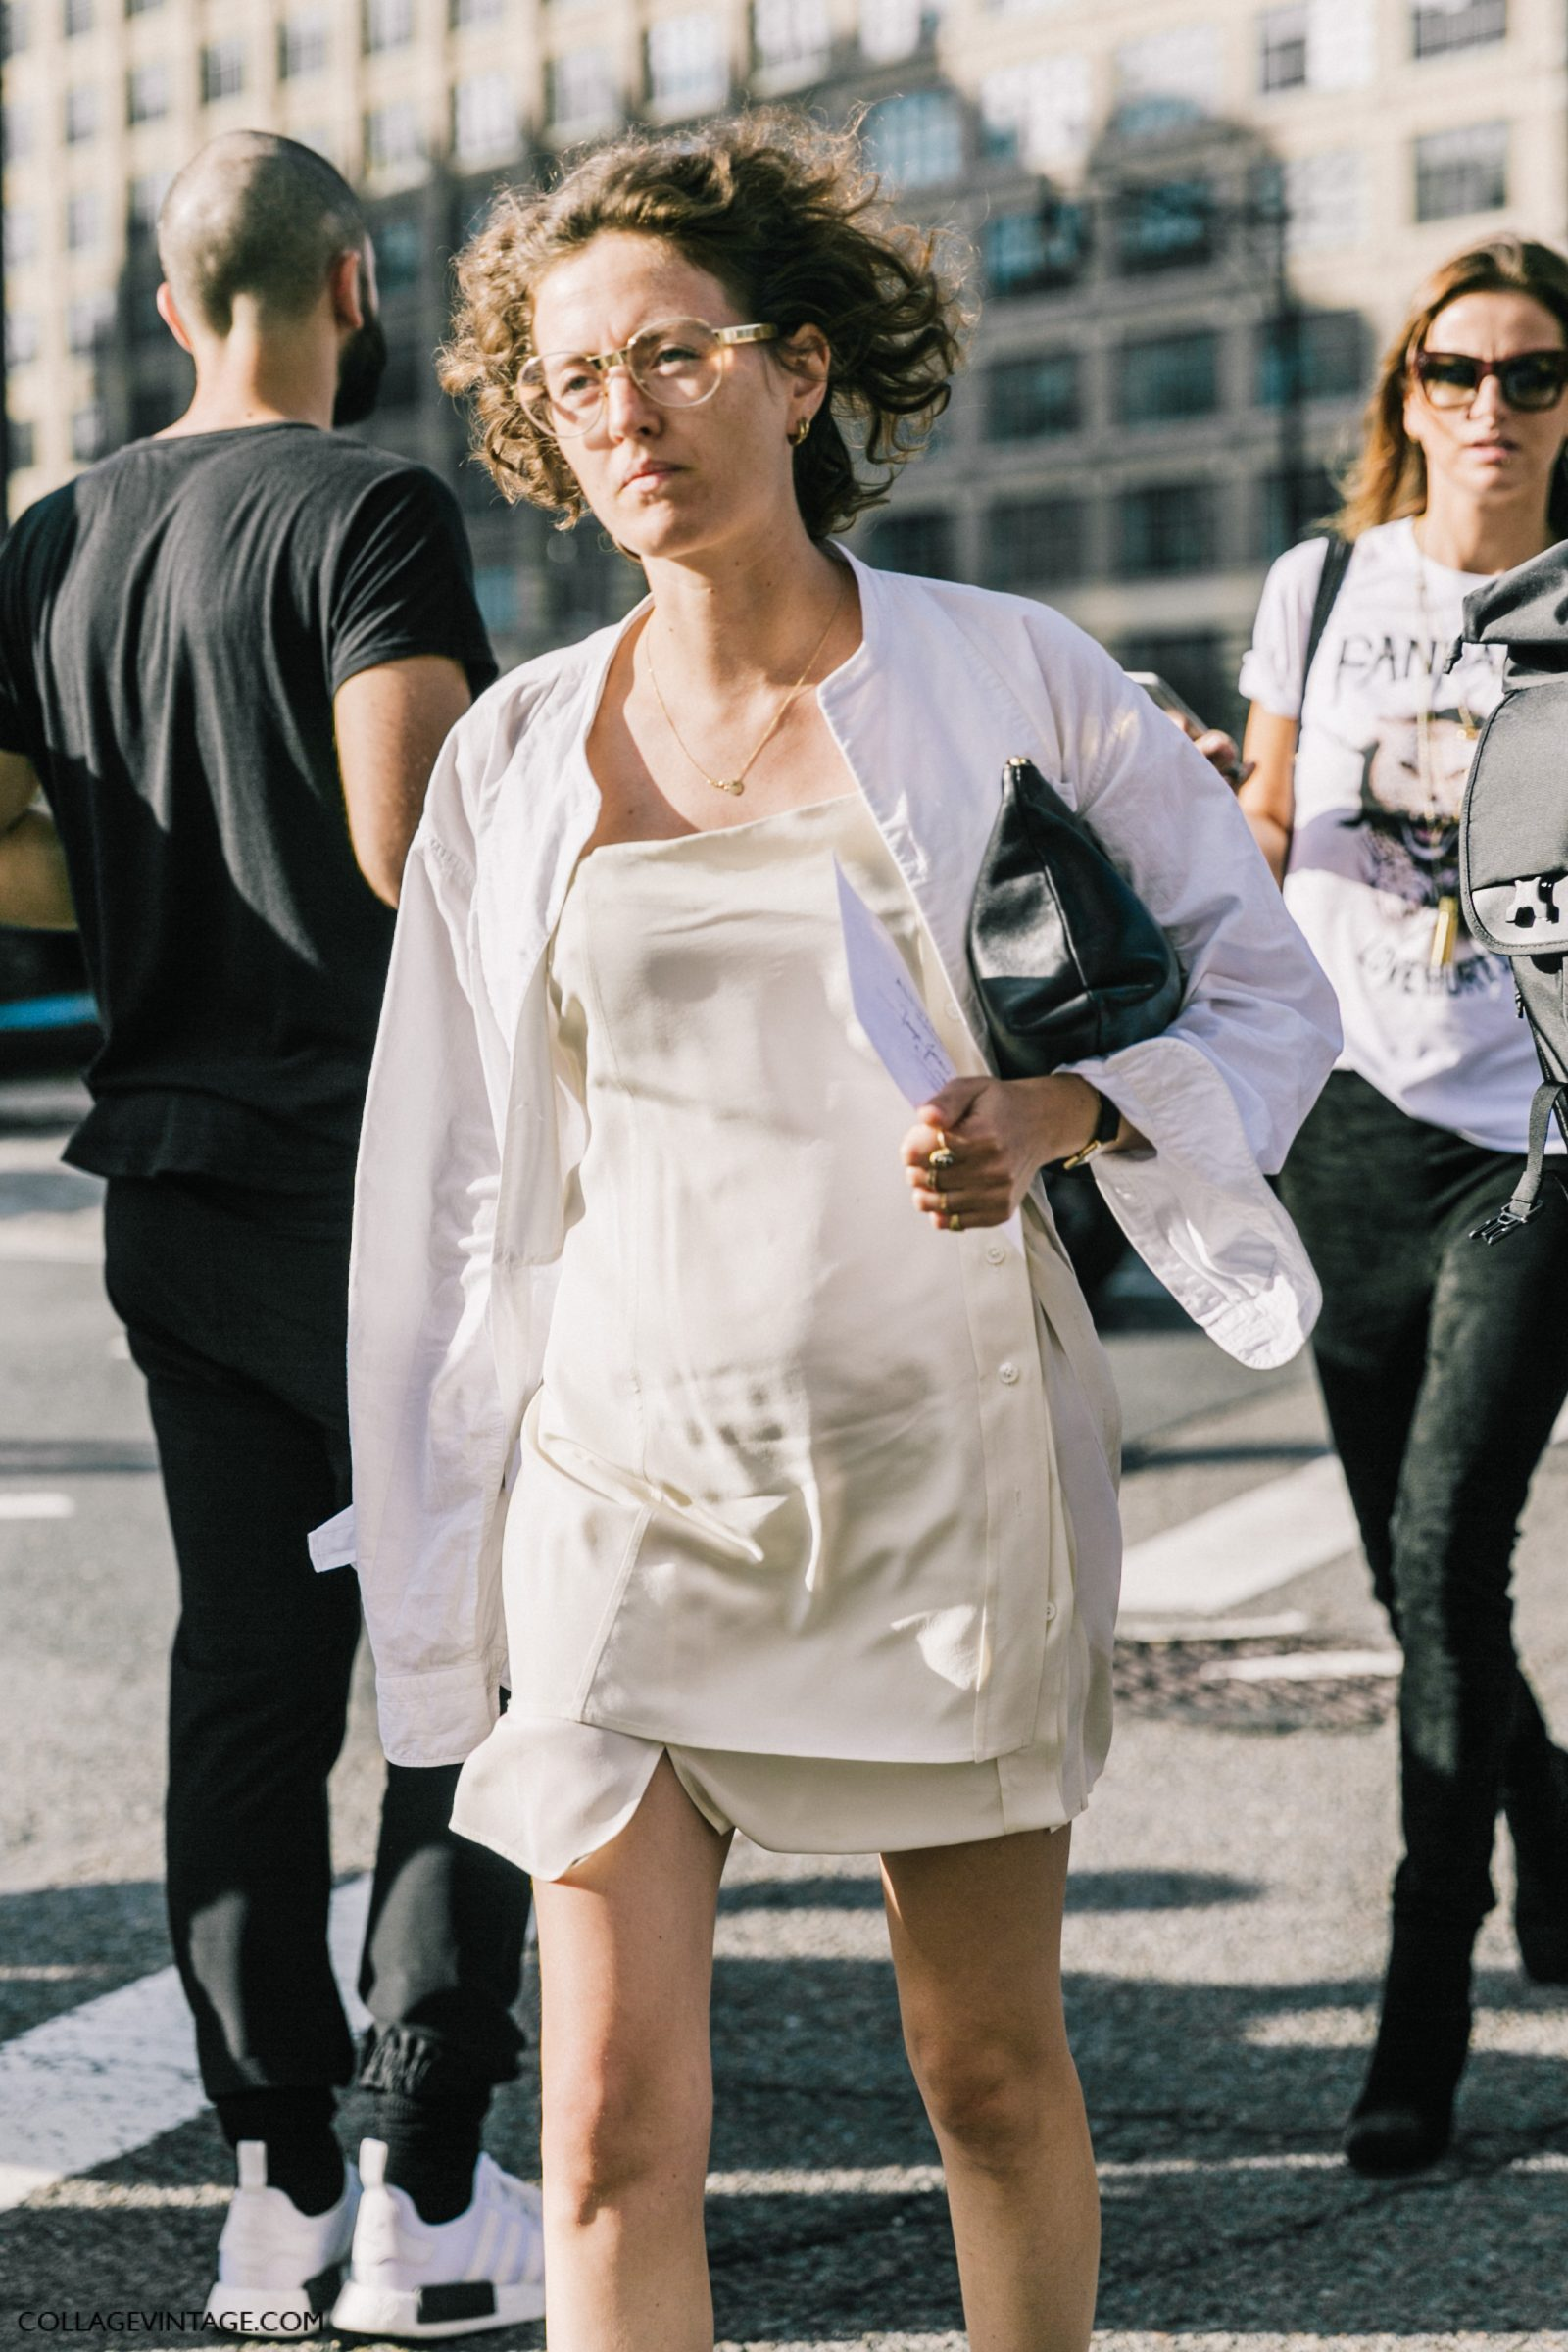 nyfw-new_york_fashion_week_ss17-street_style-outfits-collage_vintage-vintage-atuzarra-61